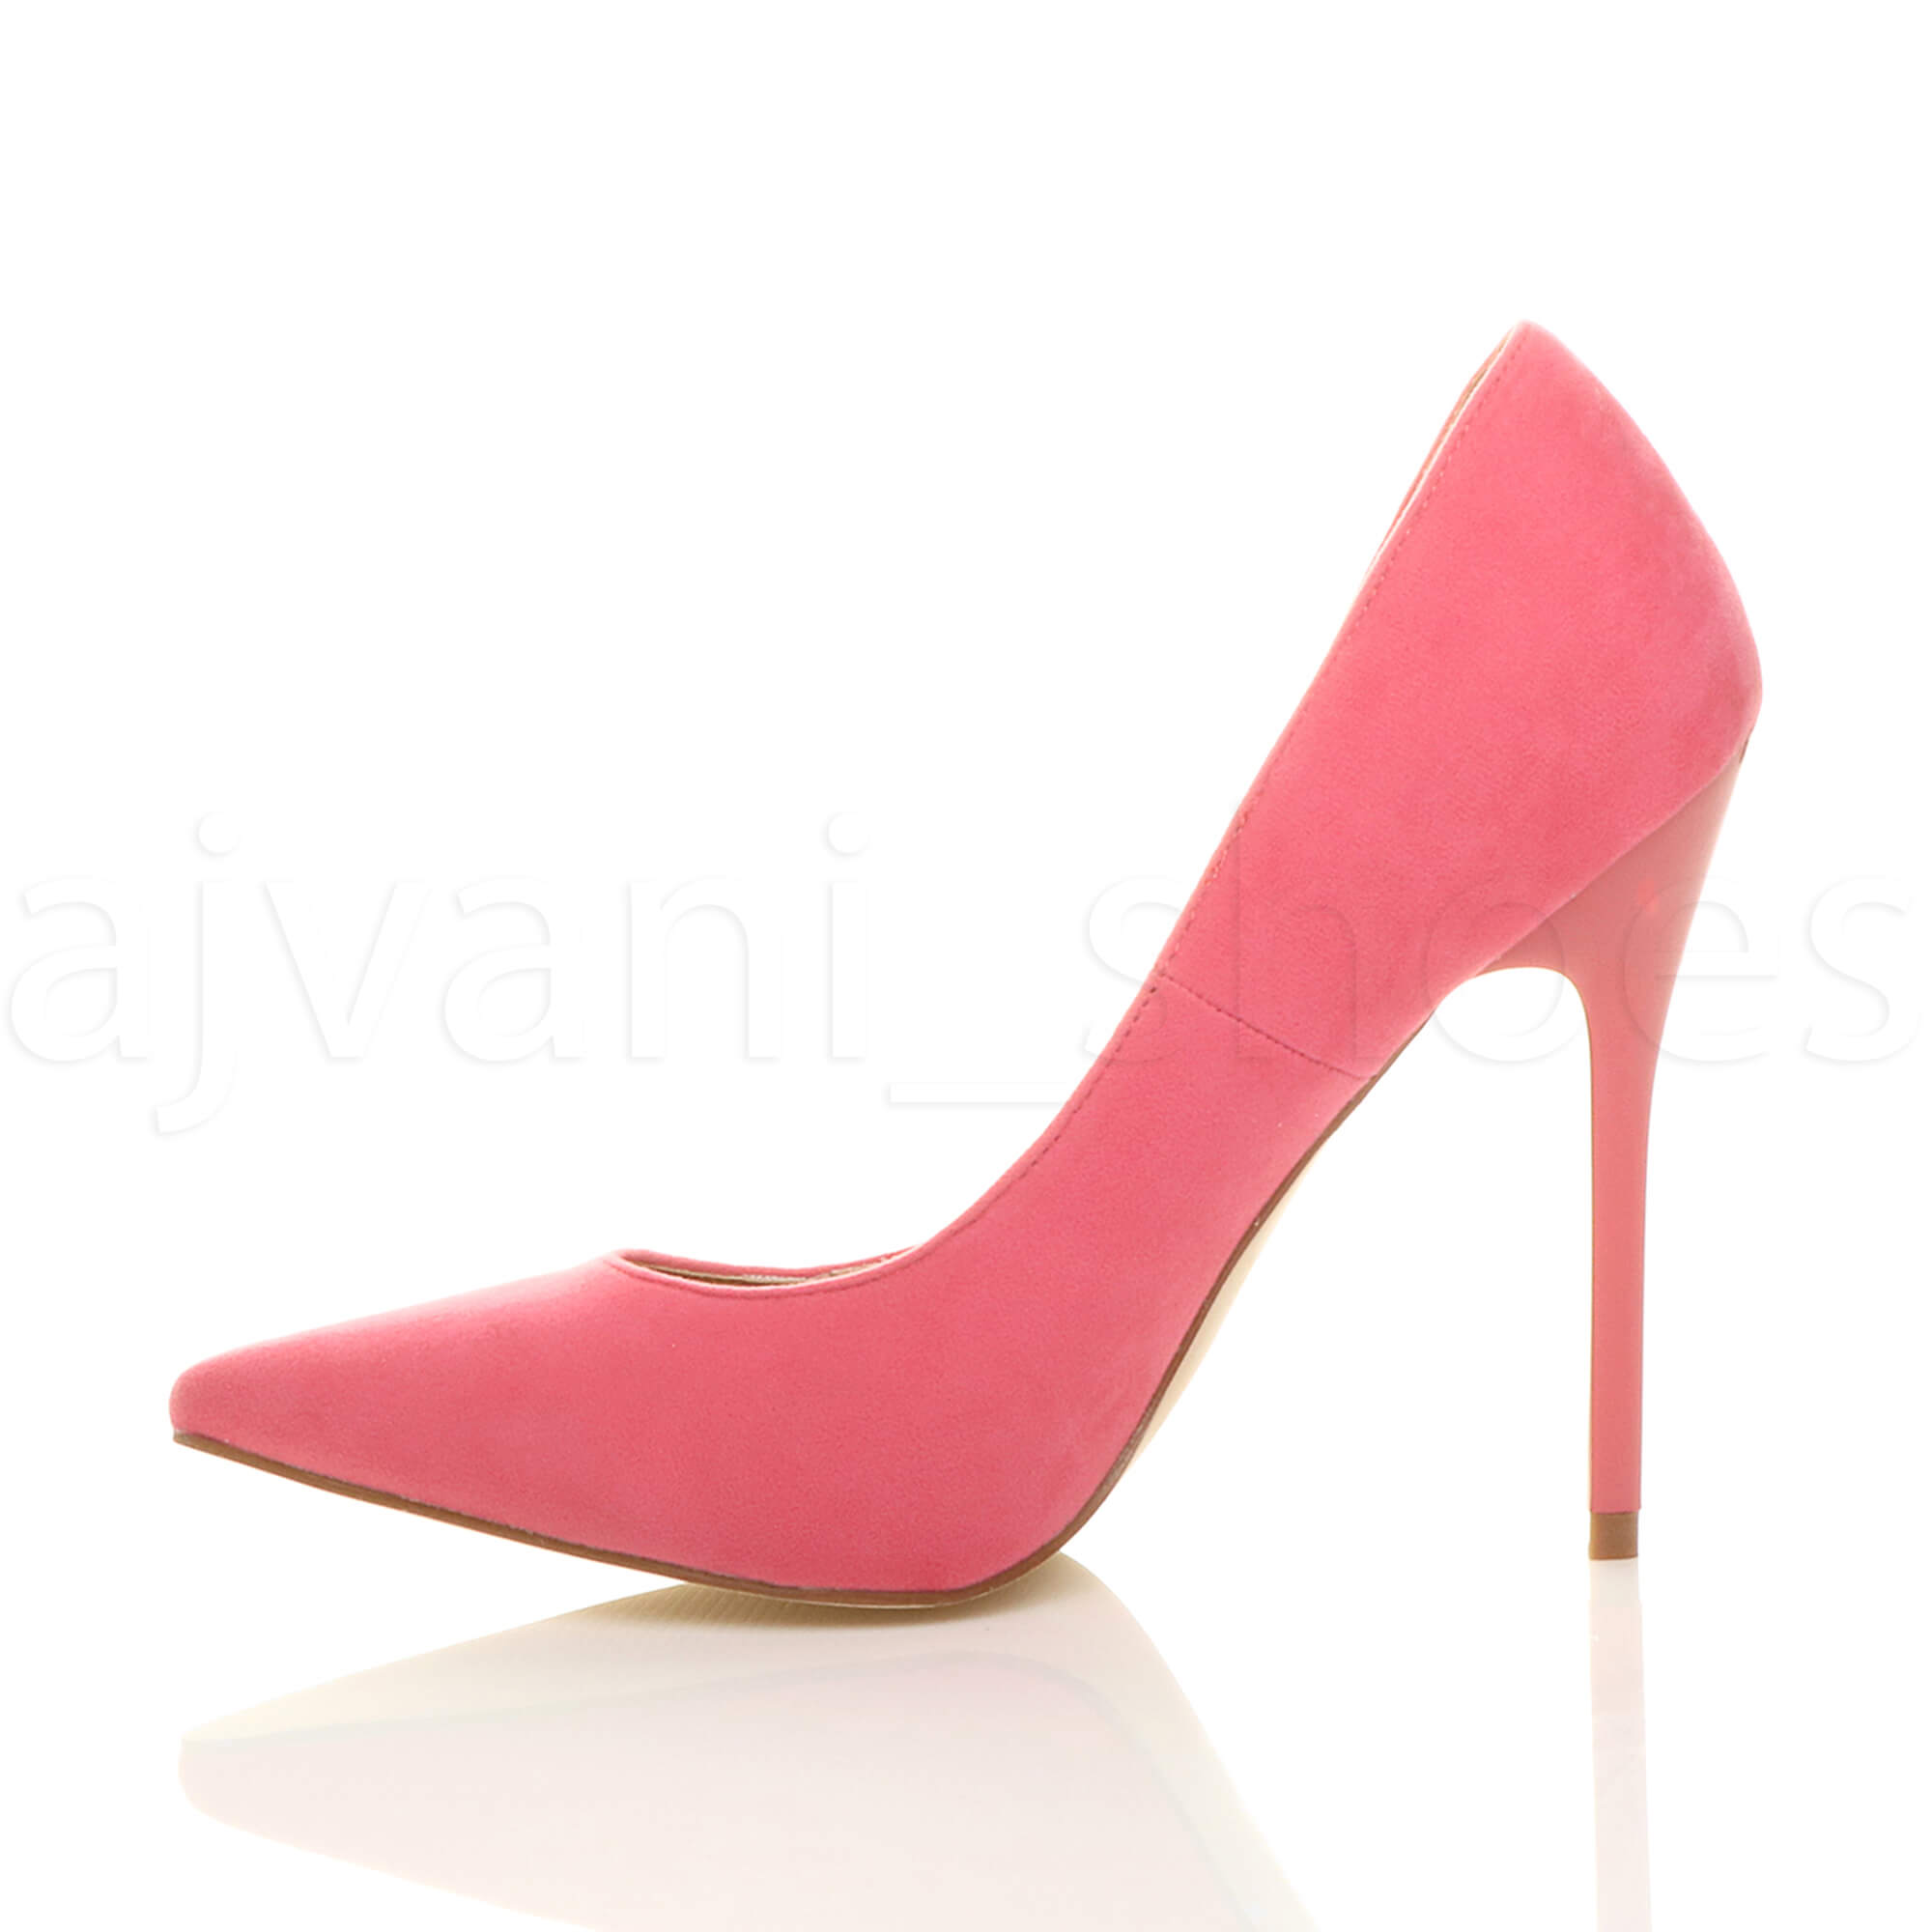 WOMENS-LADIES-HIGH-HEEL-POINTED-CONTRAST-COURT-SMART-PARTY-WORK-SHOES-PUMPS-SIZE thumbnail 138